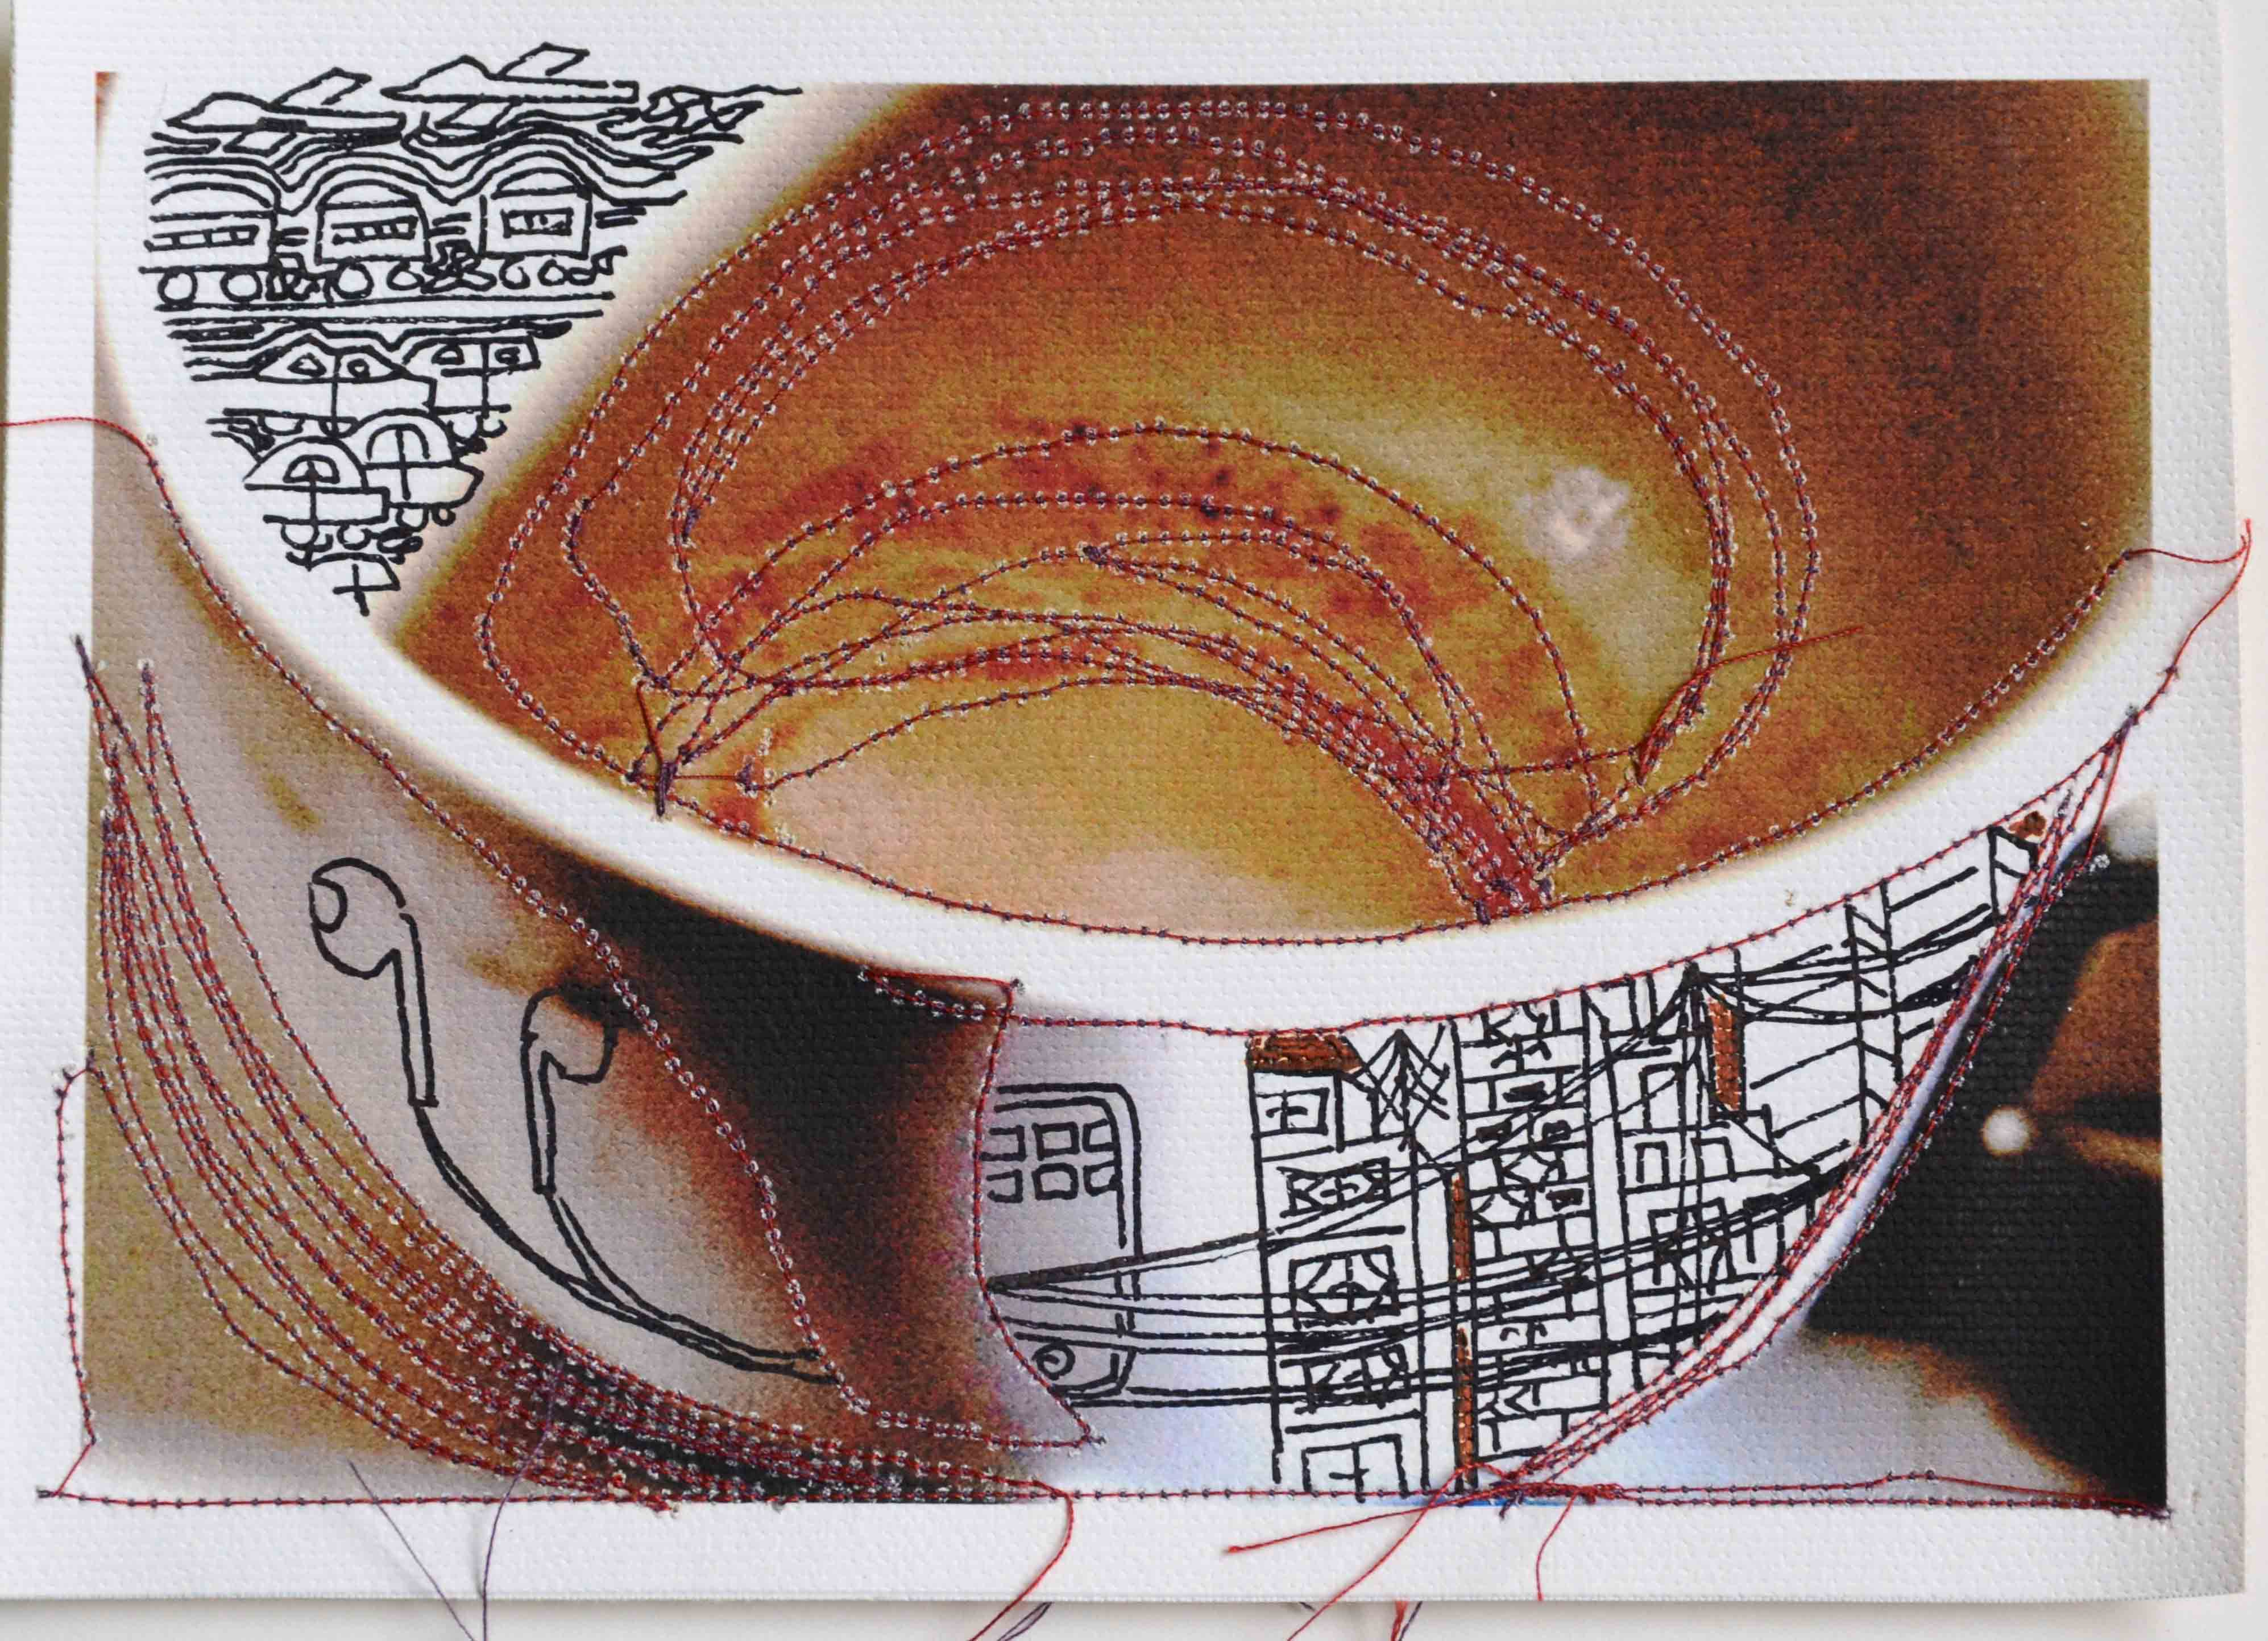 The Universe in My Tea-cup, [Set of 30], 2015, [10.25 x 8.5 inches - framed]